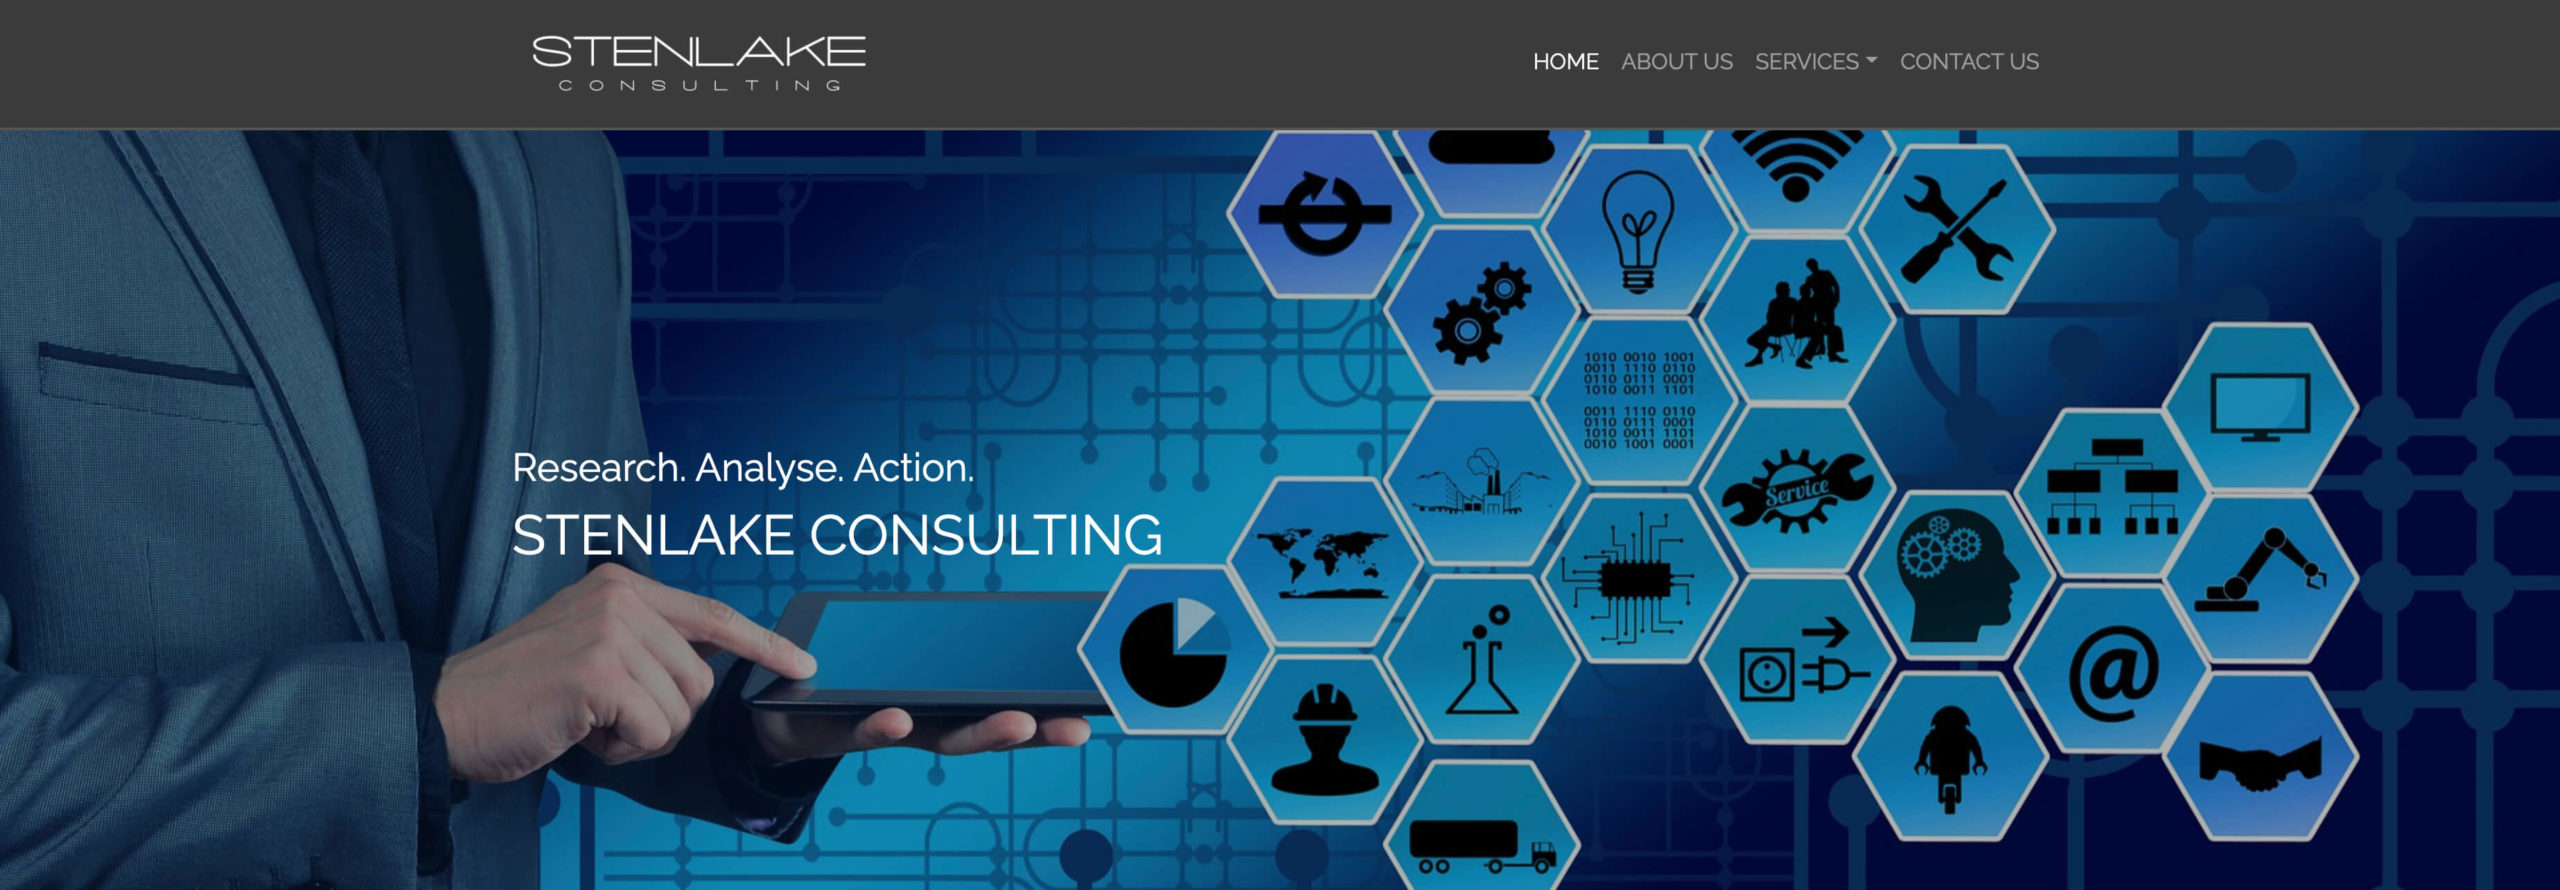 Image from Stenlake COnsulting home page